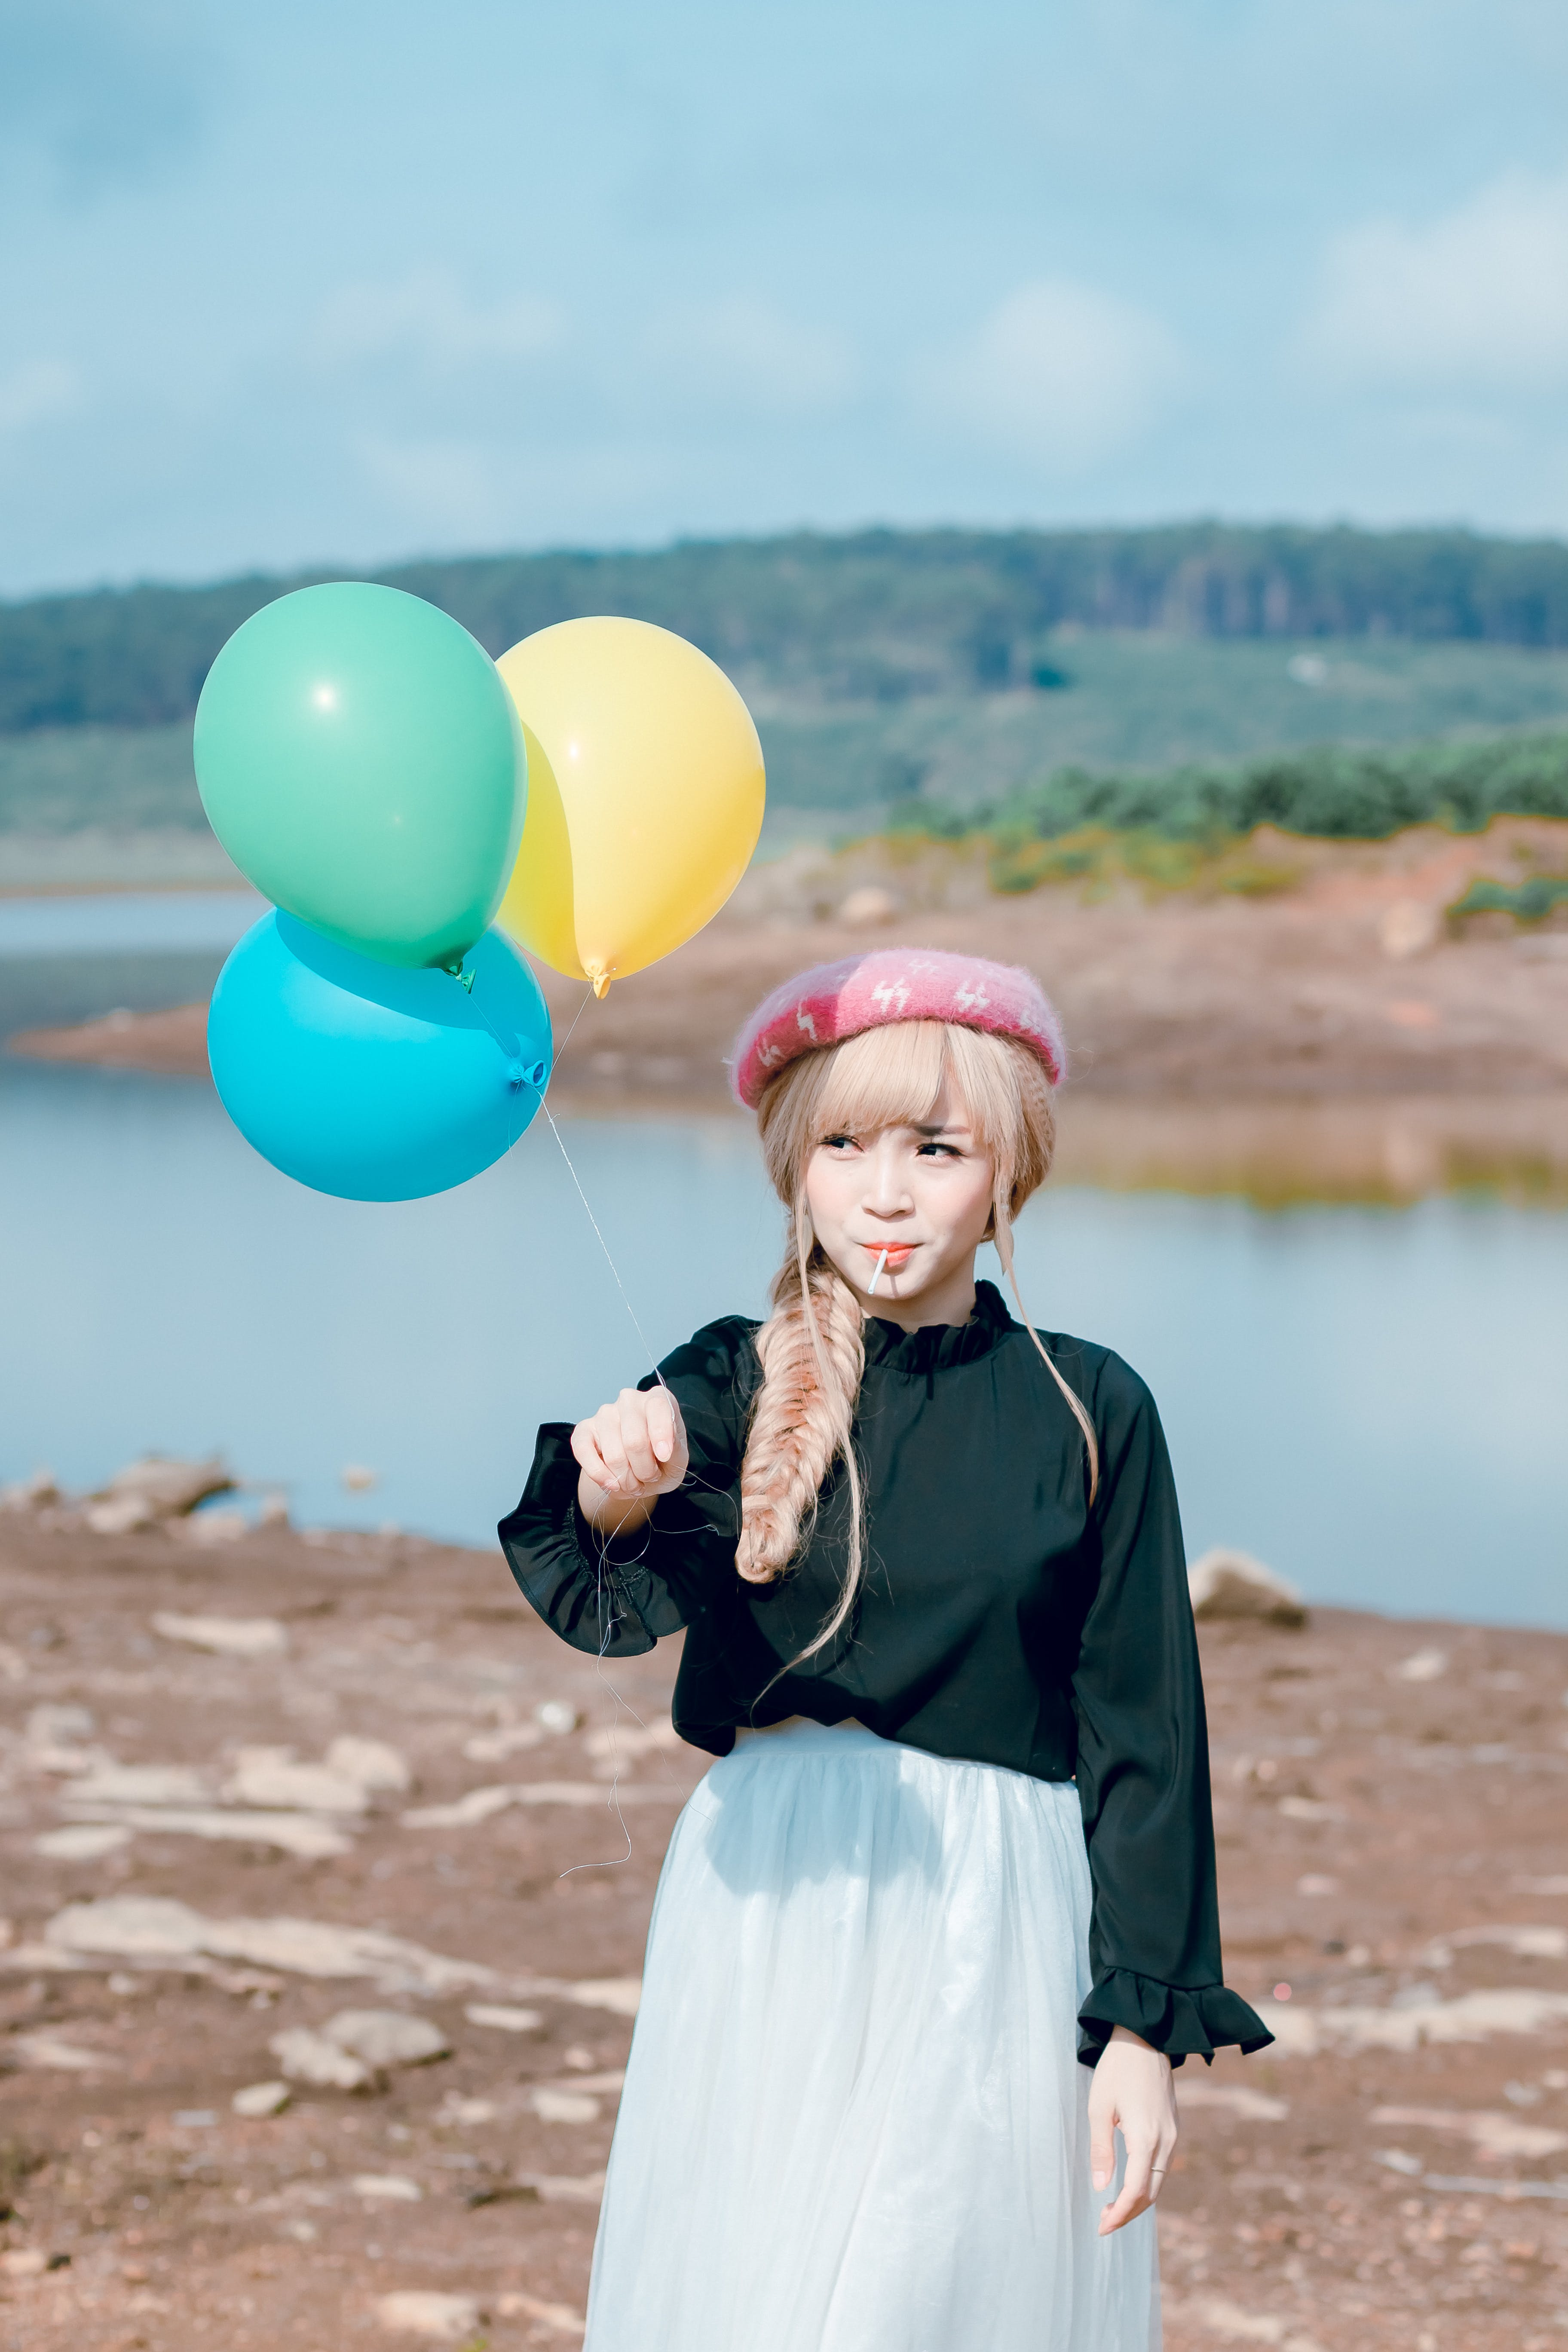 Girl In Black Top Holding Balloons